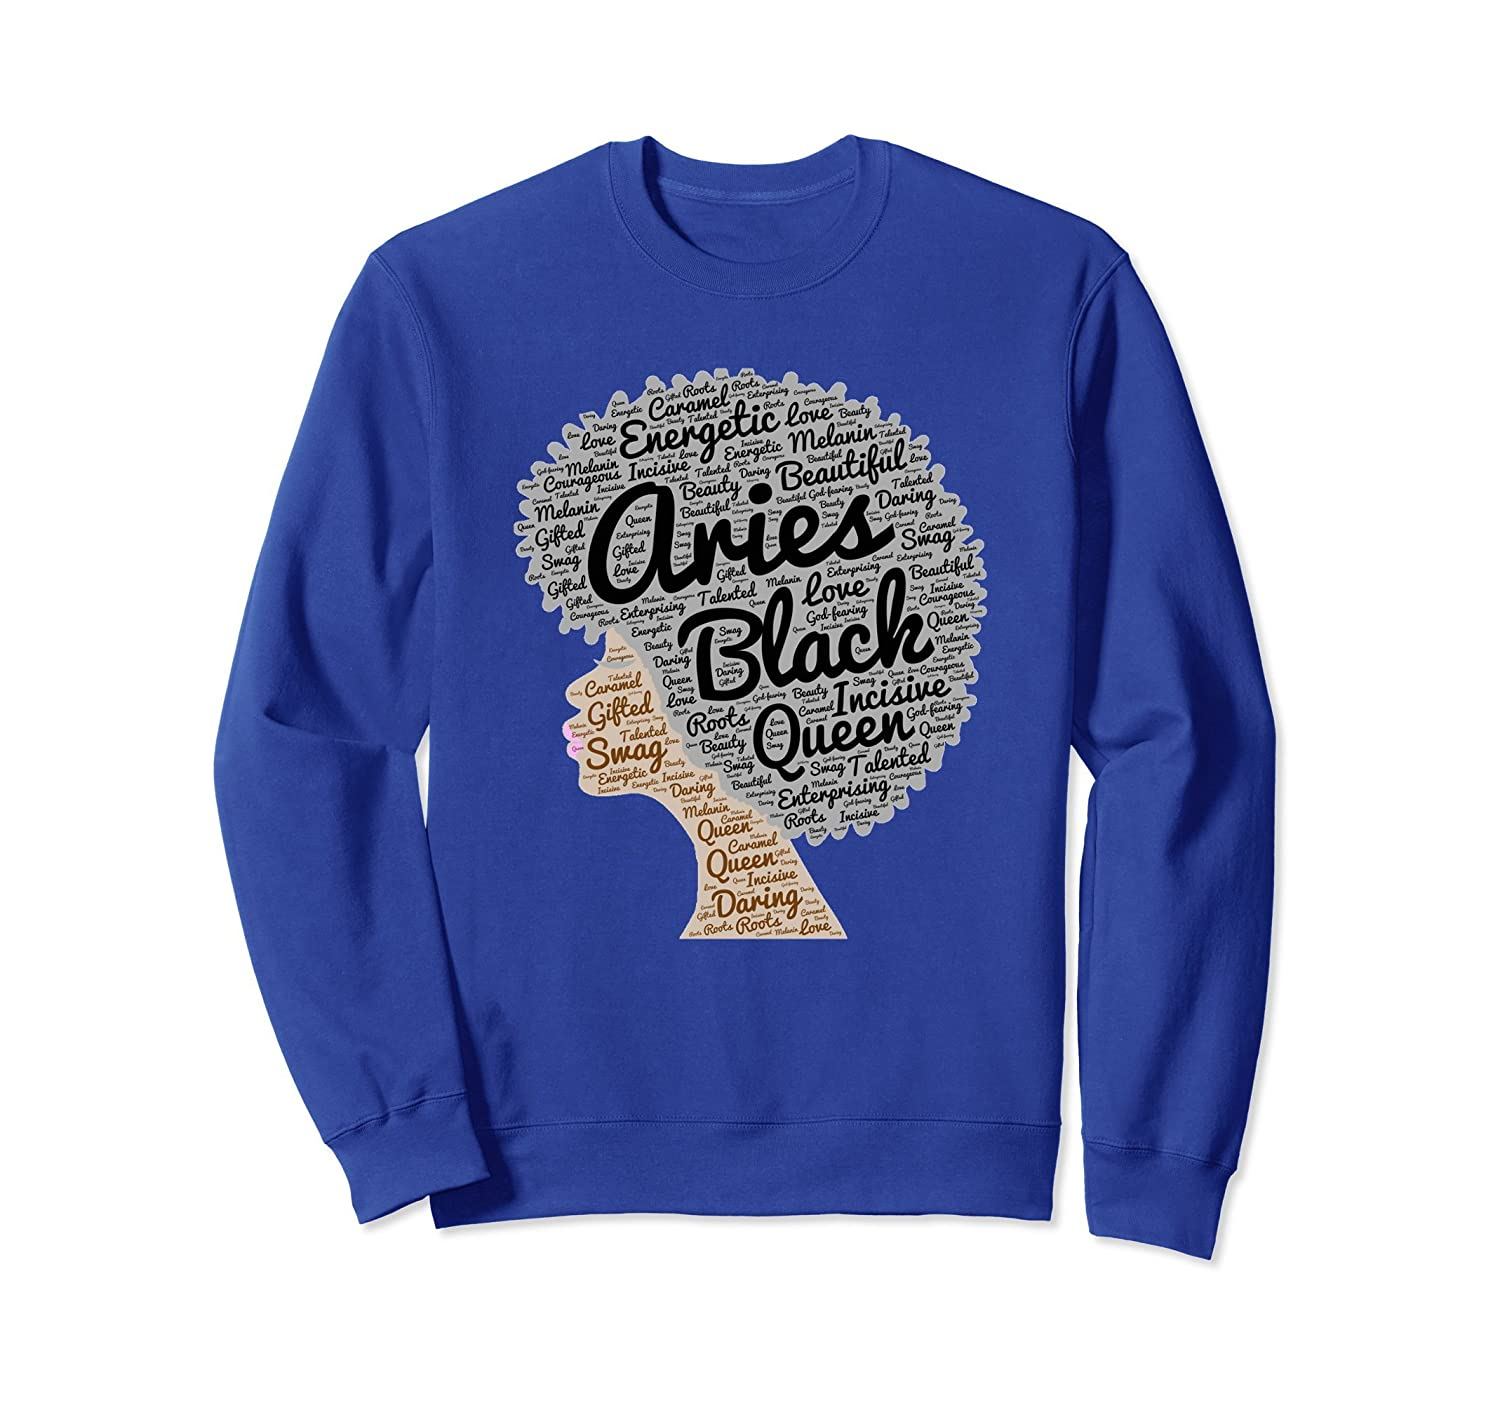 Aries Zodiac Birthday Gift Sweatshirt for Black Women-ah my shirt one gift